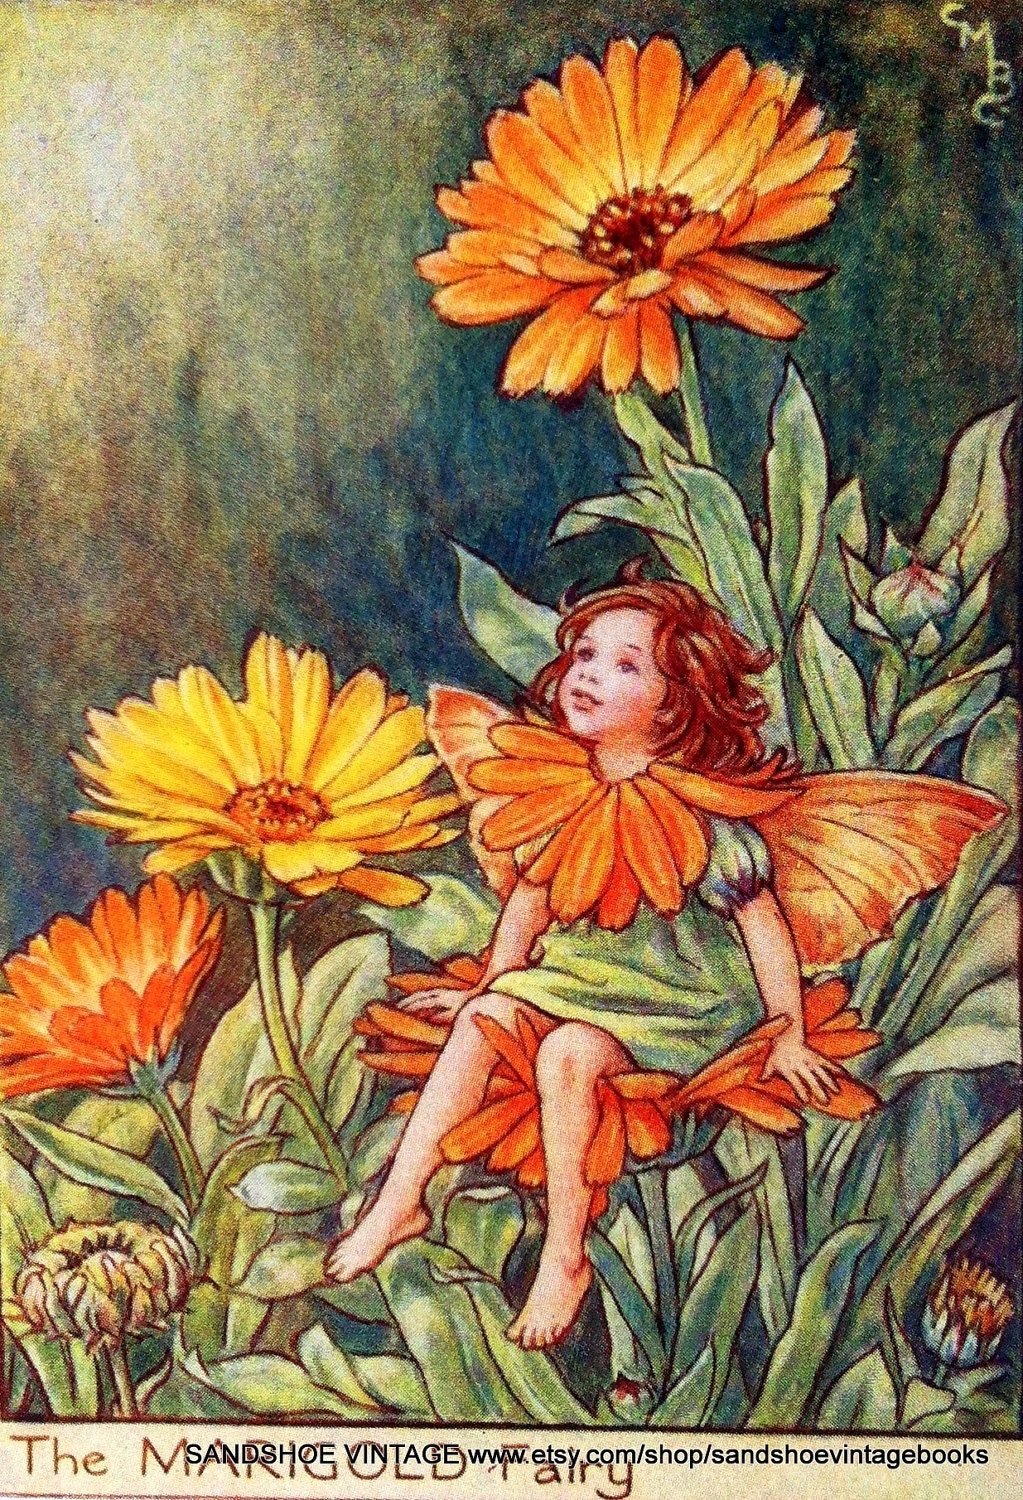 ON HOLD 1930s FAIRY Cicely Mary Barker Print Ideal for Framing